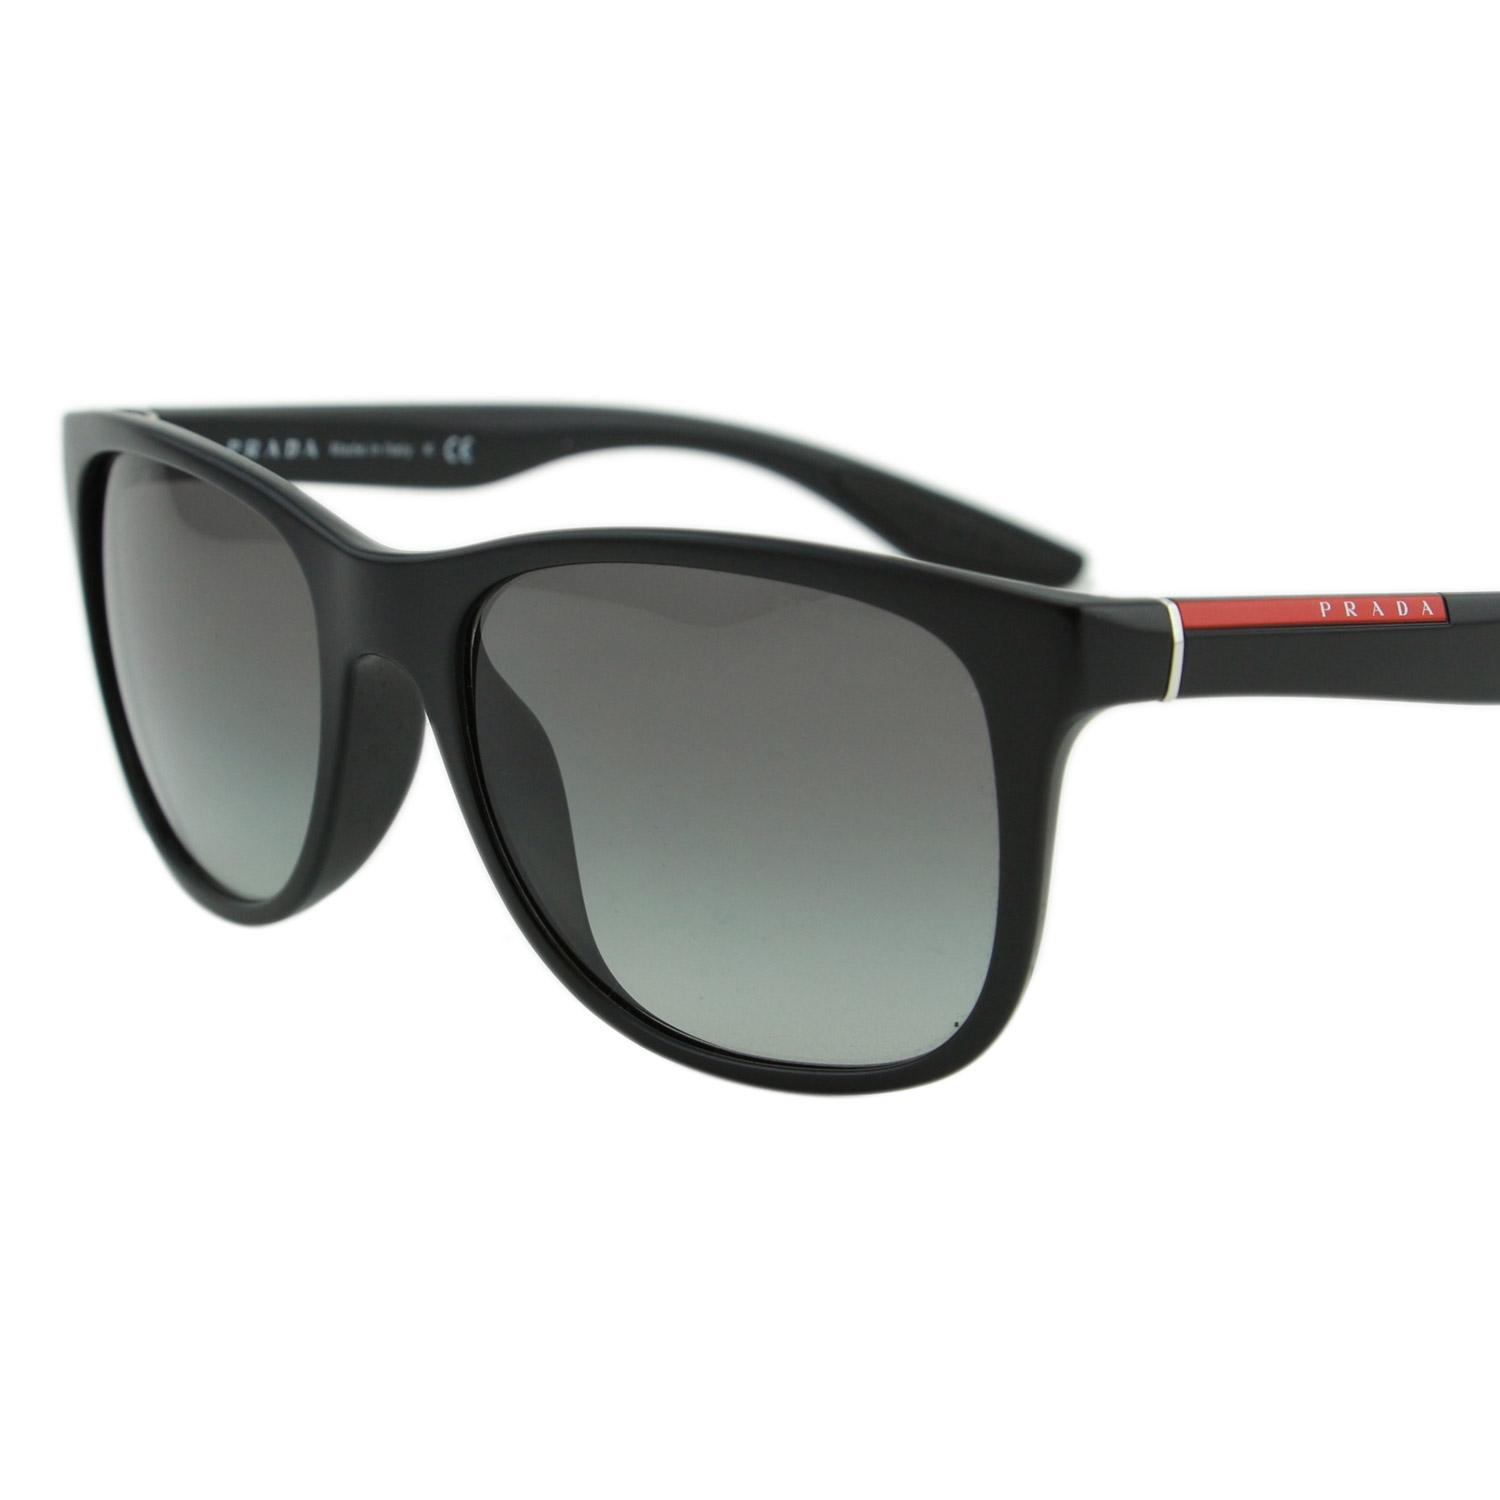 32d7f17332 ... sale prada new sport ps03o 1bo3m1 linea rossa men square 55mm sunglasses  e4fc4 39155